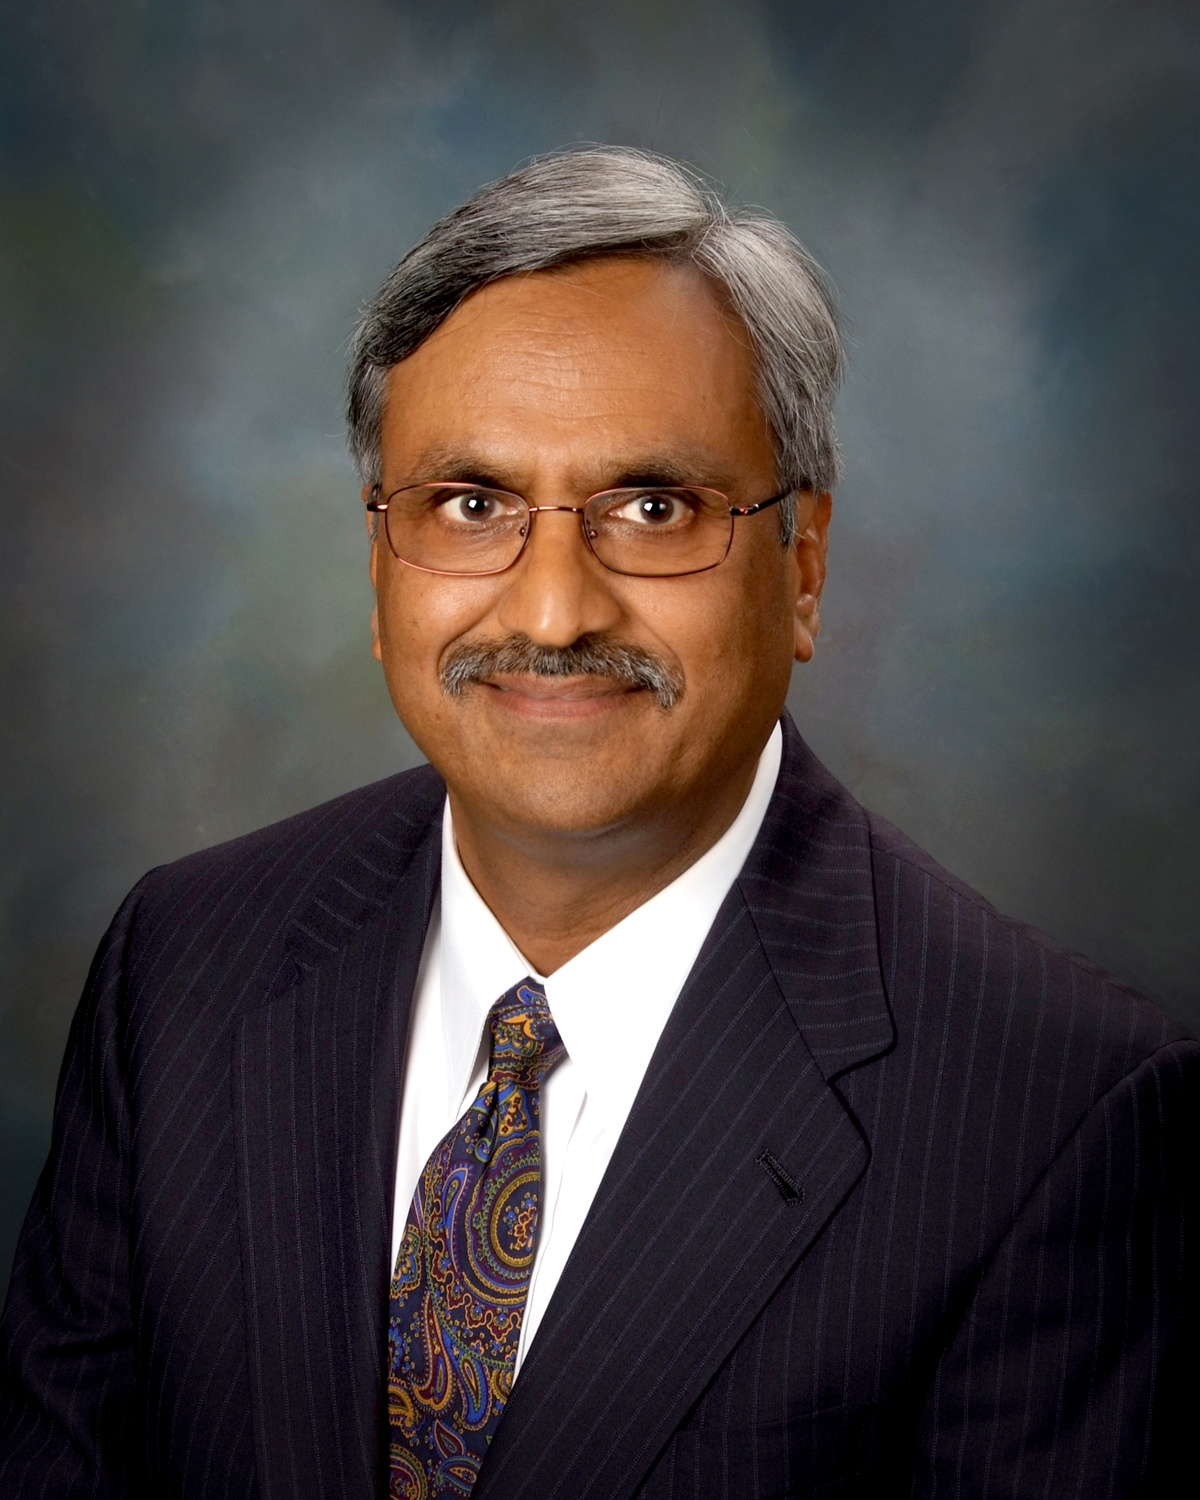 Rakesh Mohan in suit and tie smiling at the camera